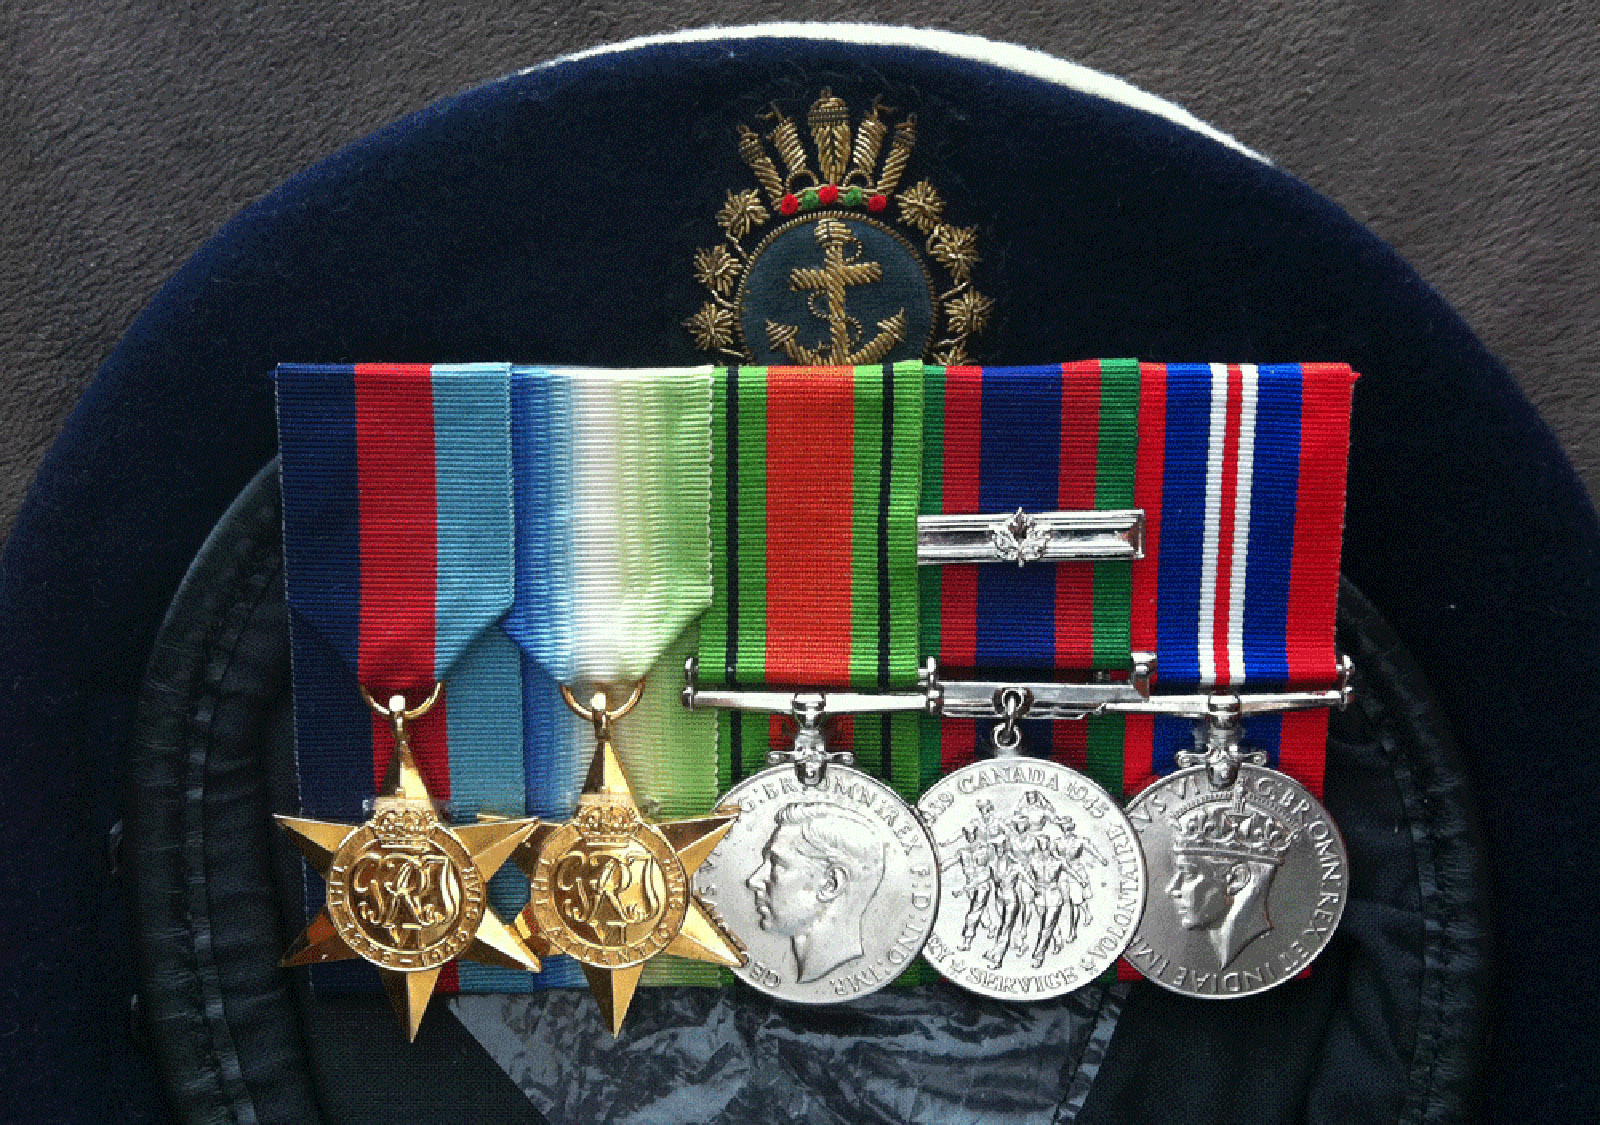 Medals received by AB Harrison F. Stumpf over the course of his duty.